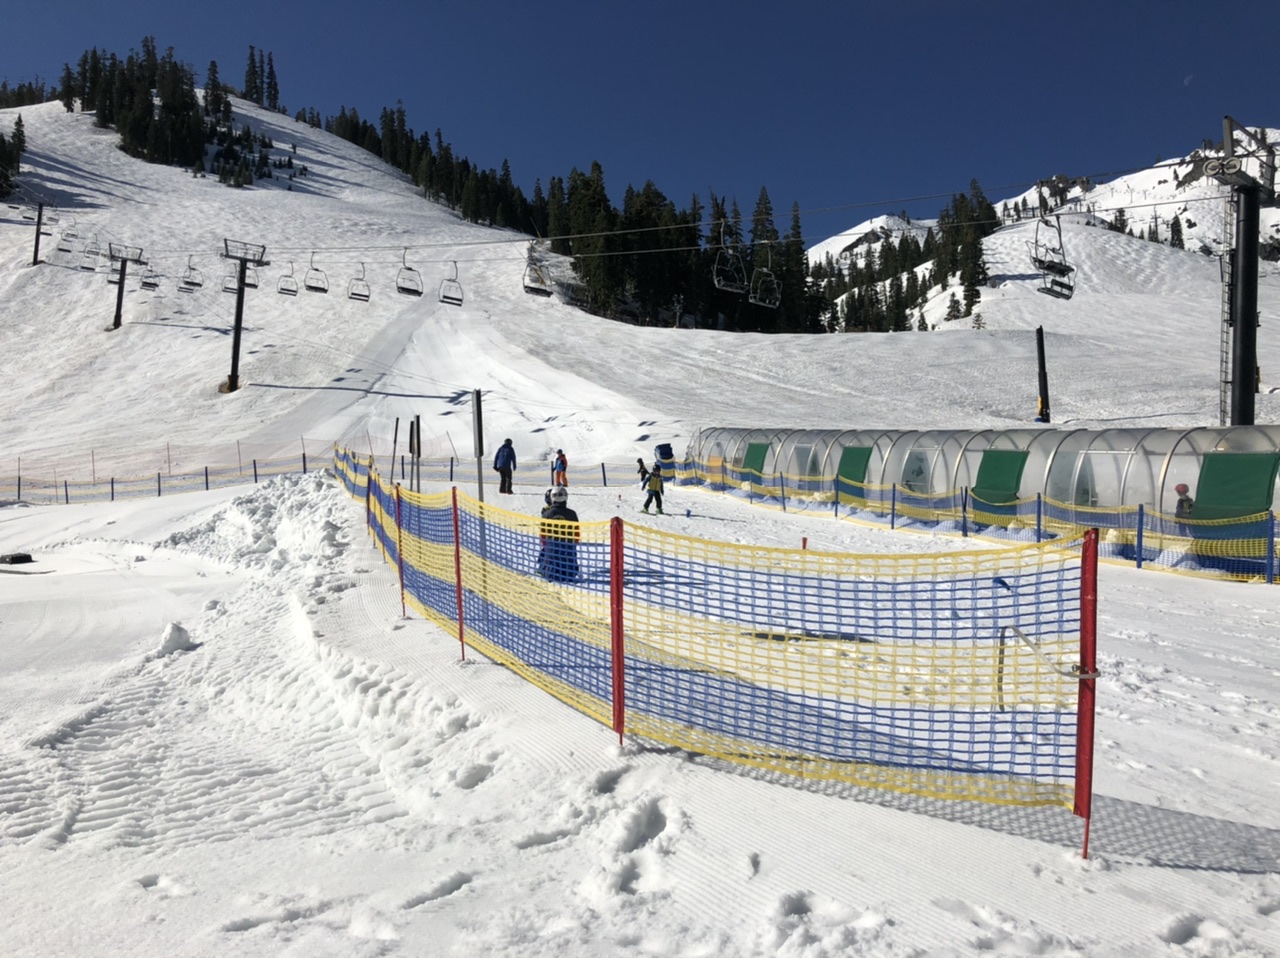 Squaw Valley magic carpet area for kids' ski level test